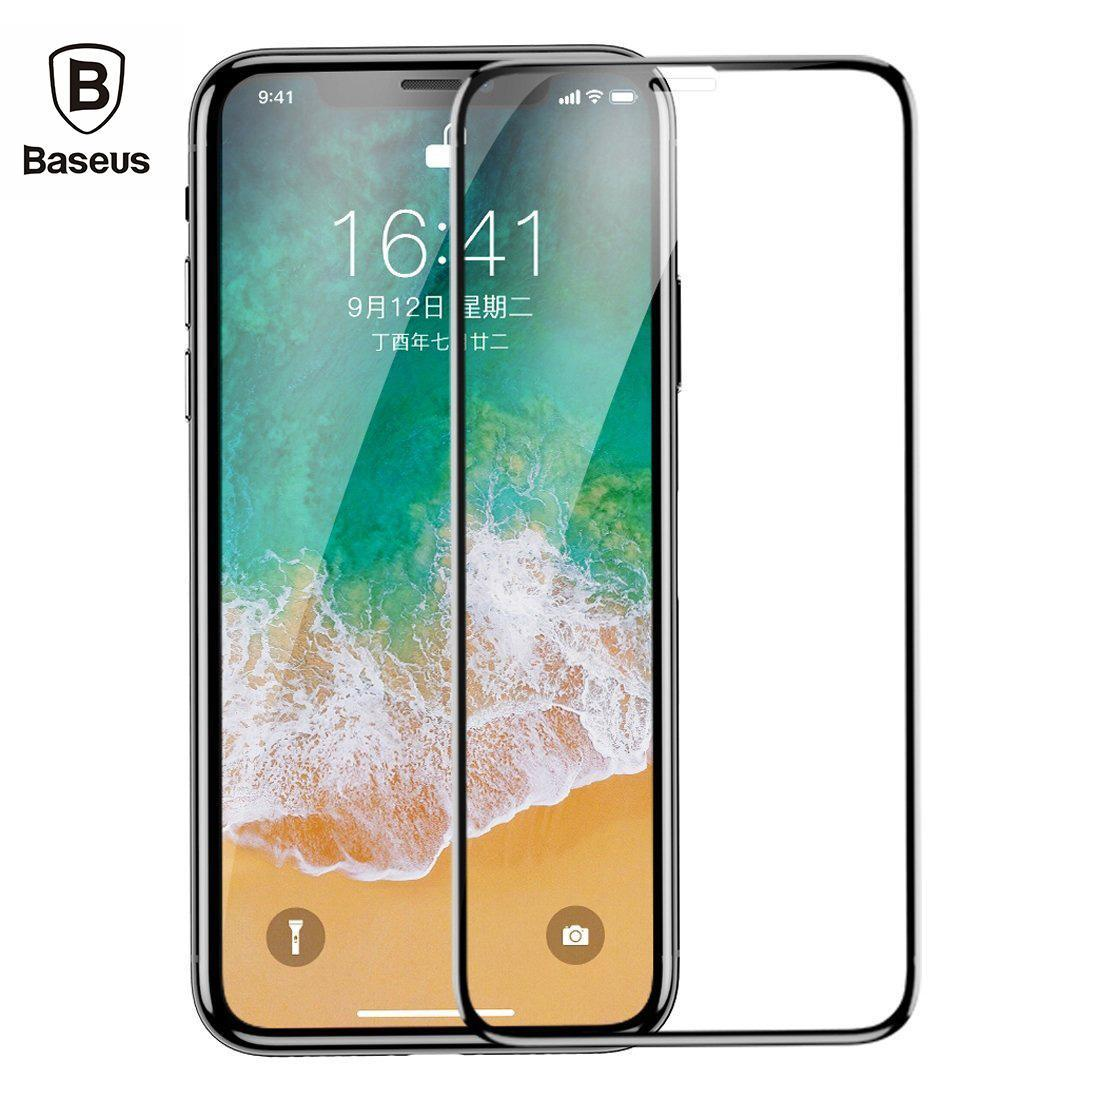 Buy Top Screen Protectors Mobiles Tempered Glass Iphone 6 6s Plus 3d Full Cover Clear 4d Premium Baseus Xs Max X Xr Arc Protector